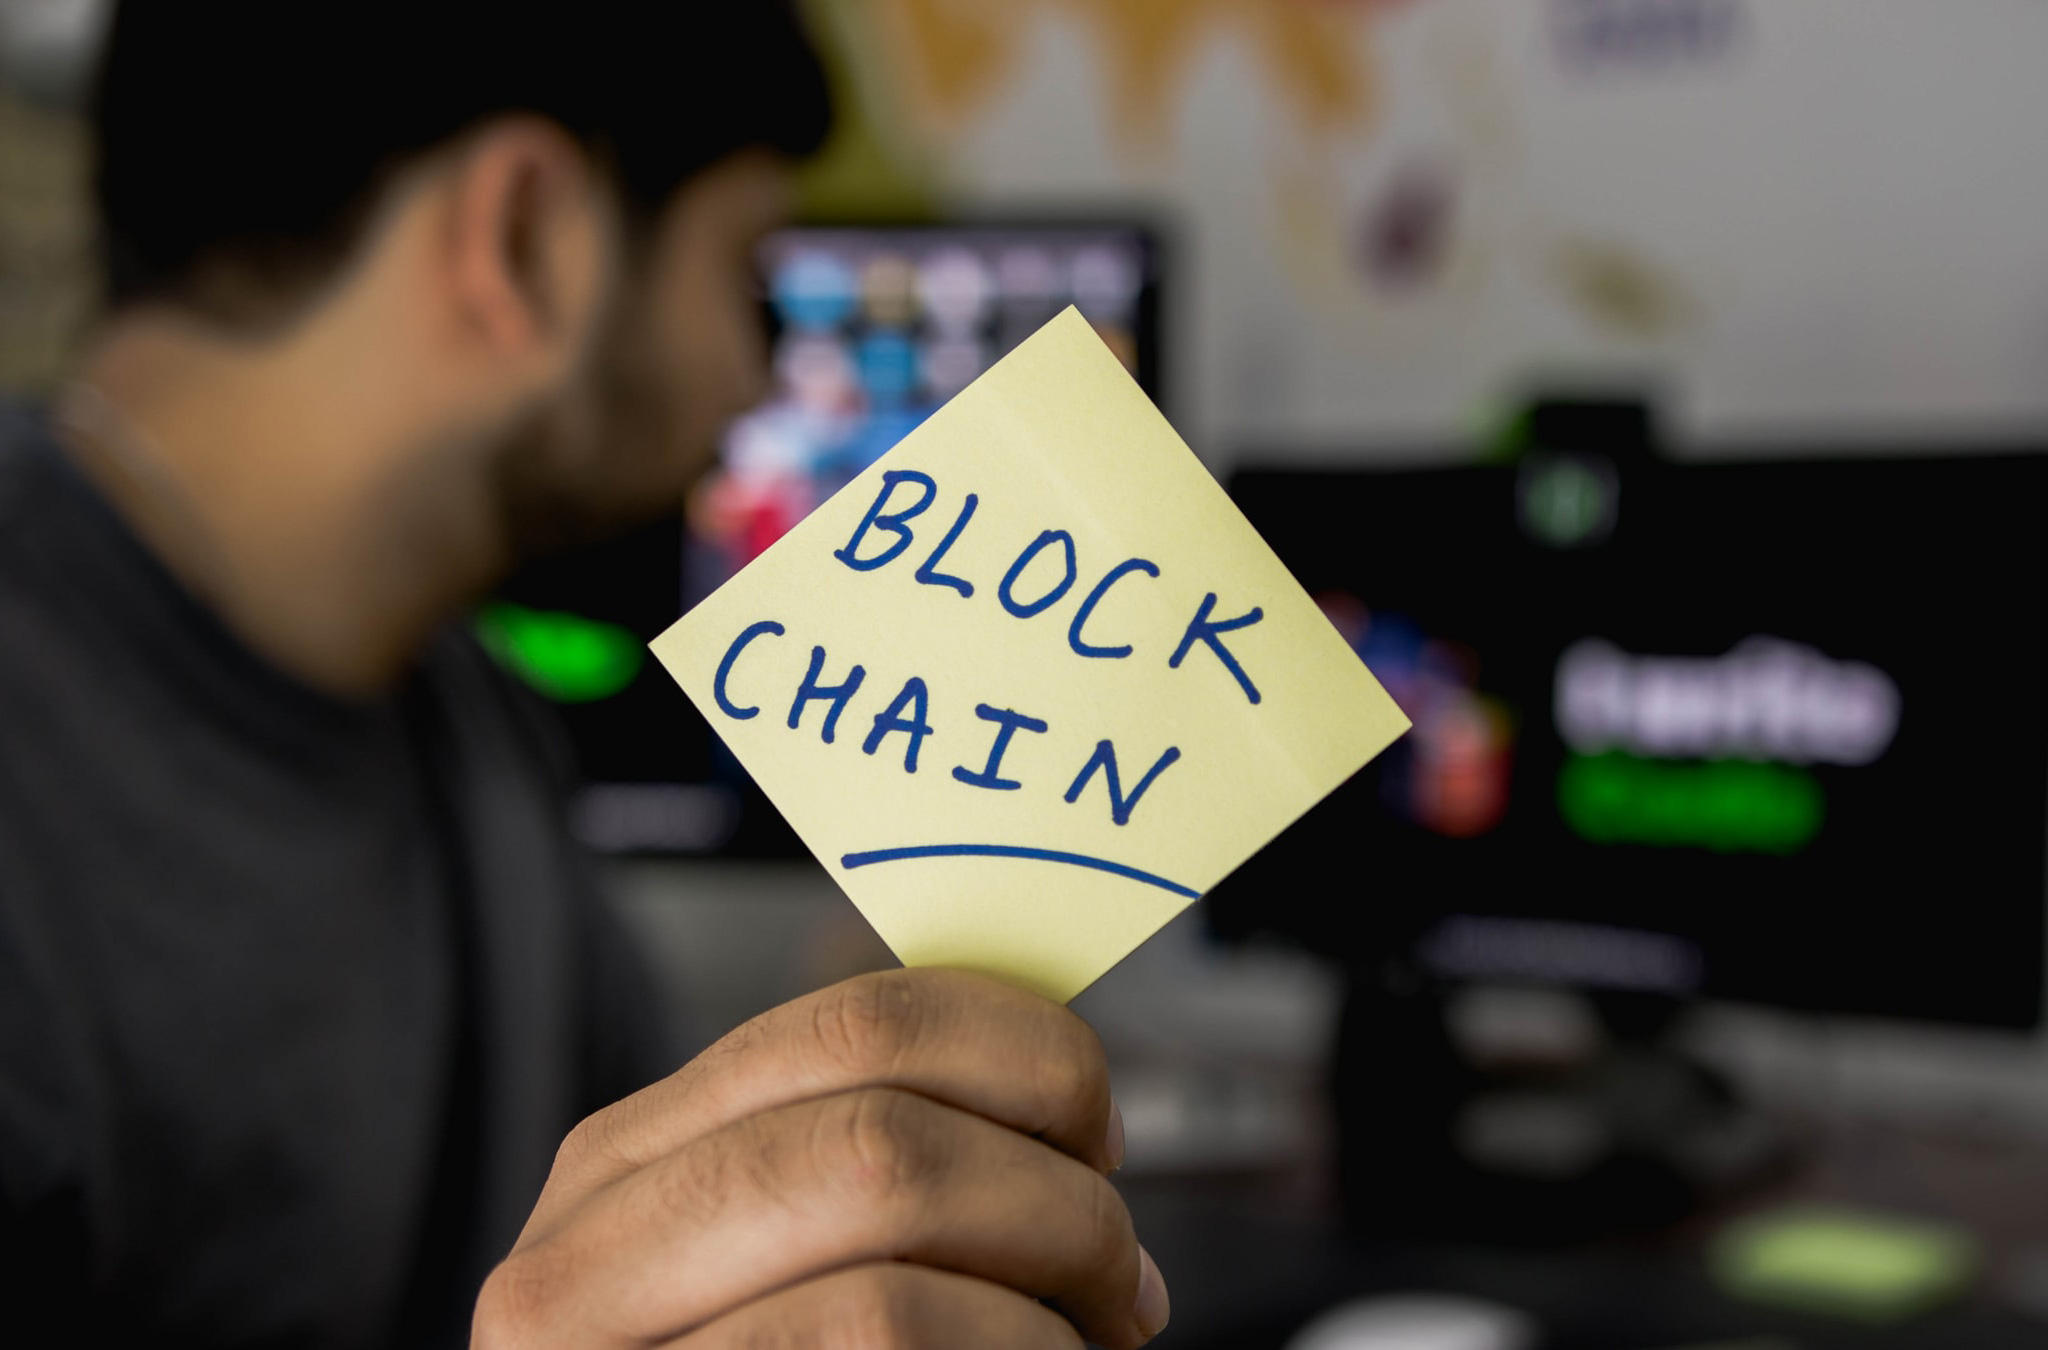 Blockchain-Technologie bei cargo support